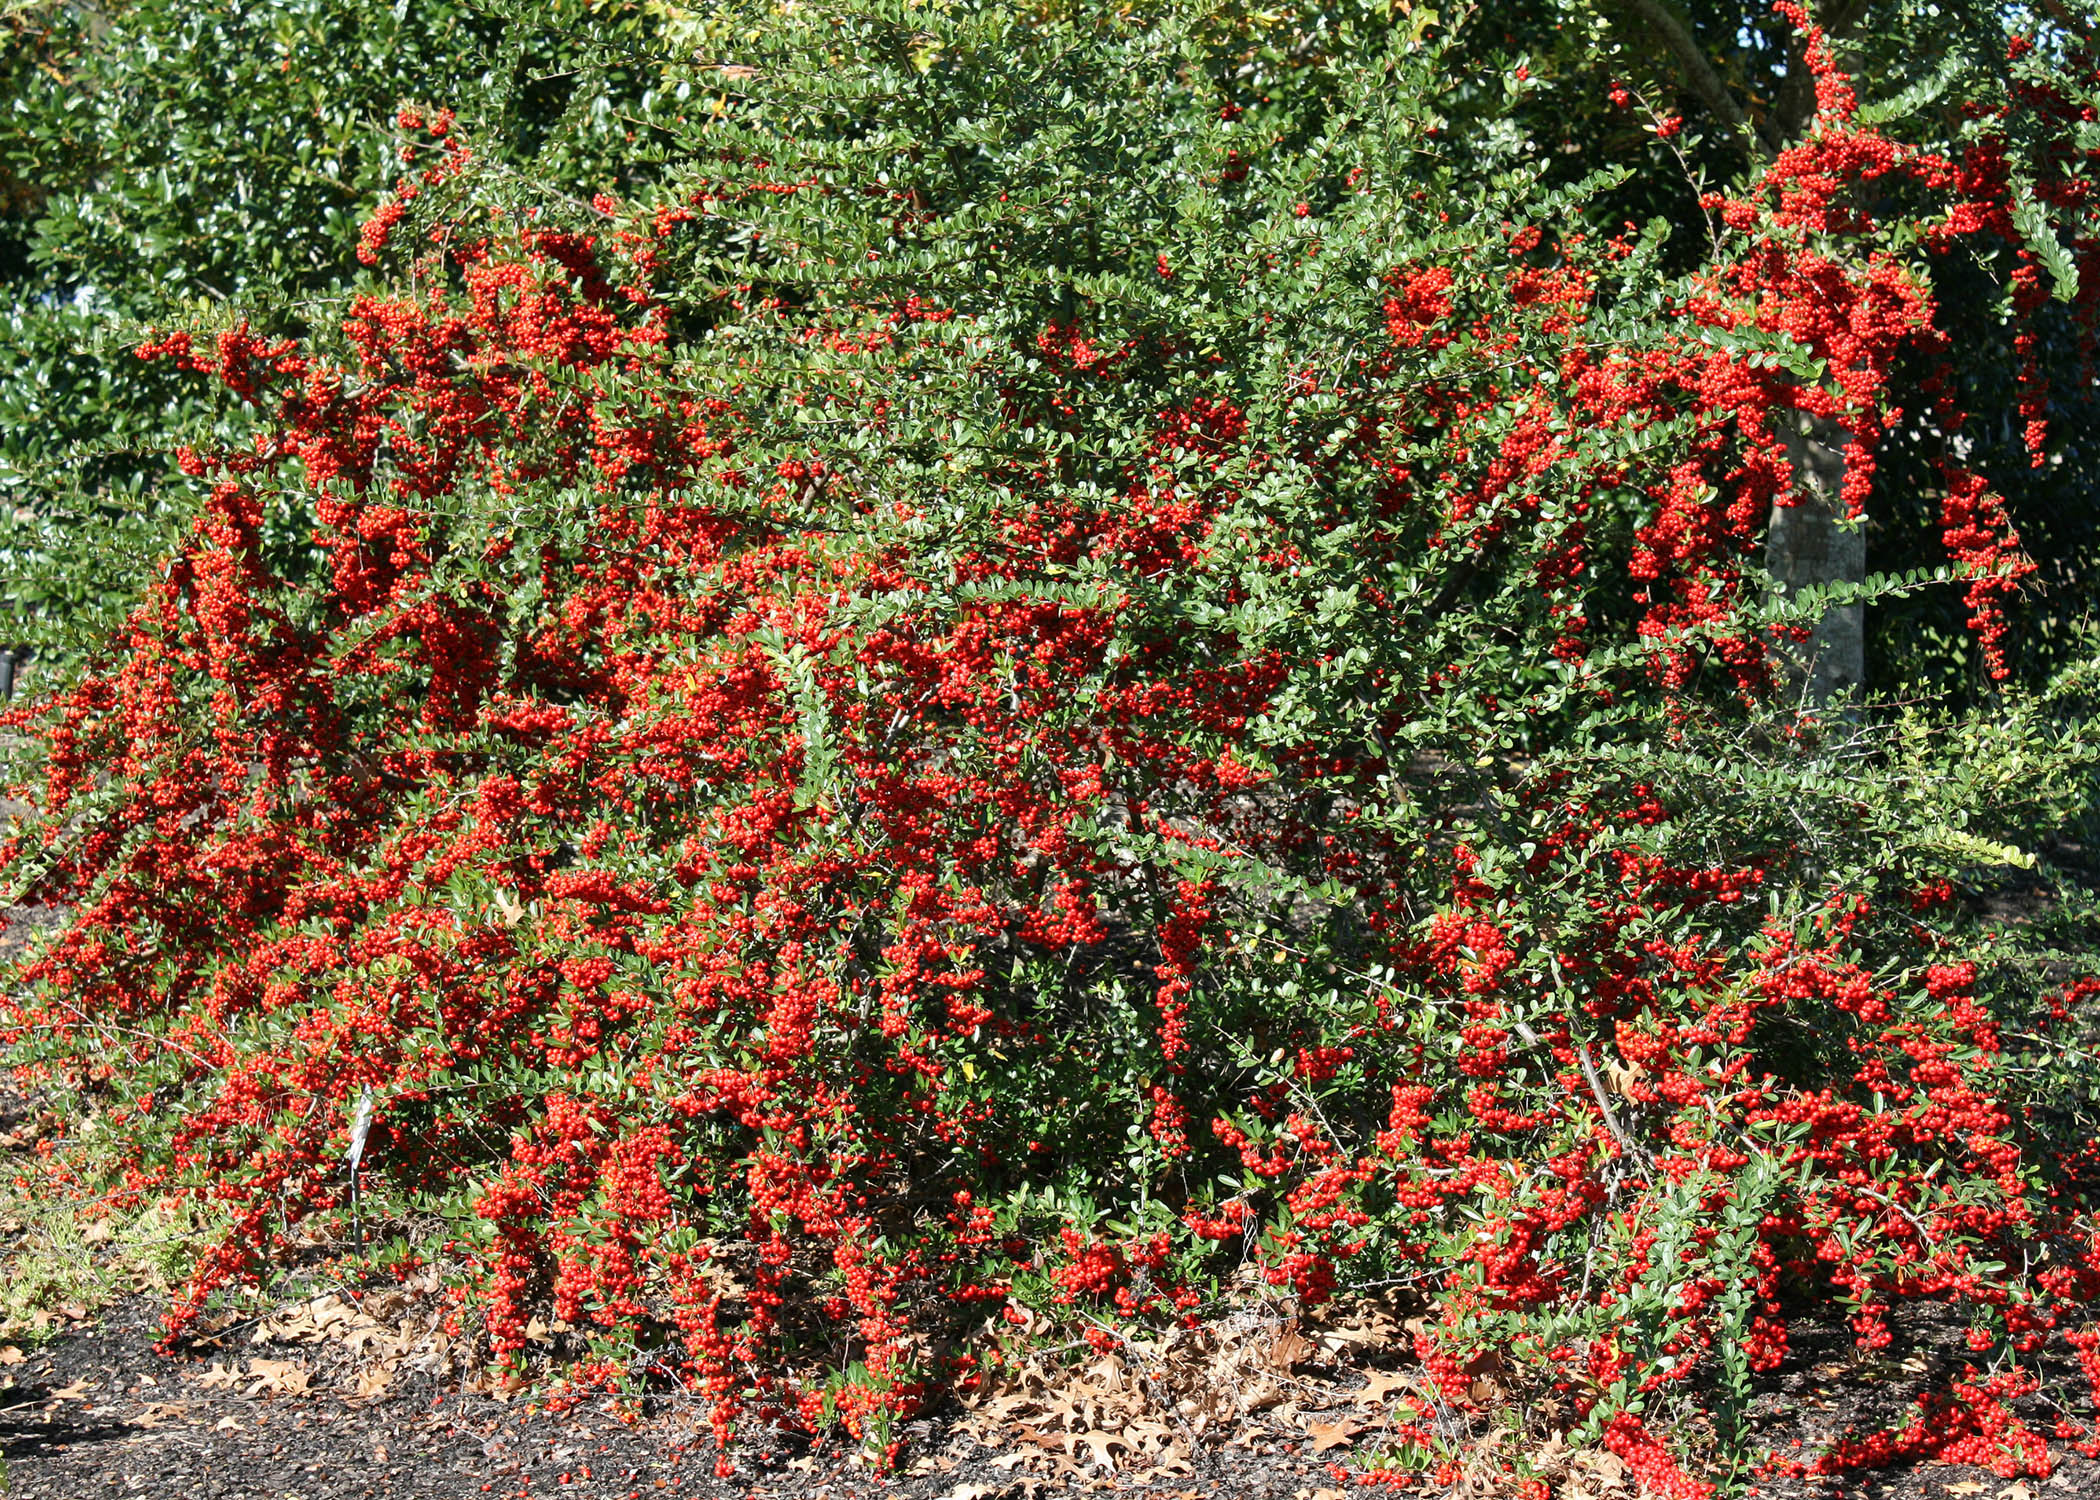 Landscaping Shrubs With Red Berries : Bushes with red berries offer winter garden color